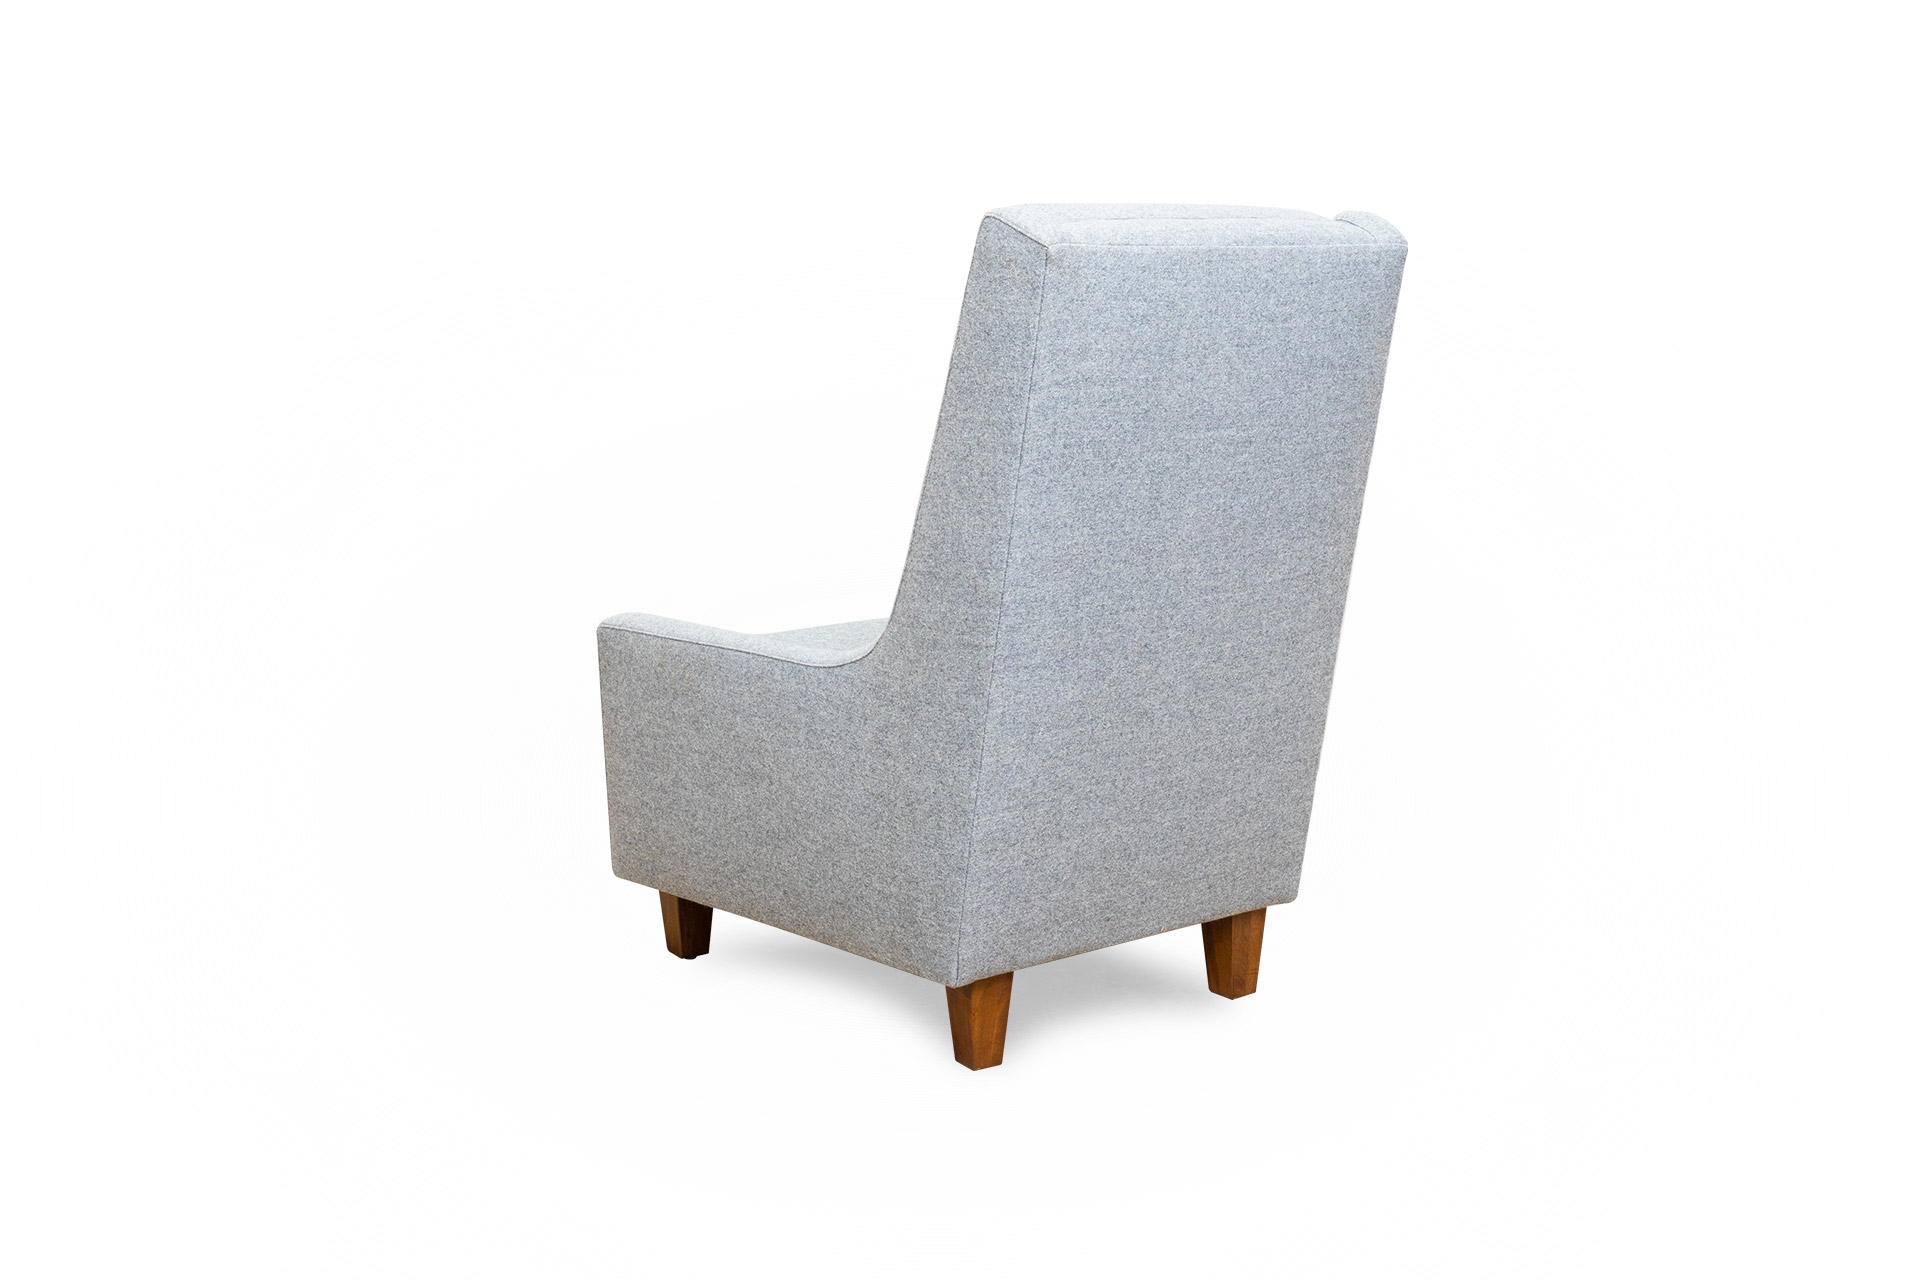 loft-and-manor-brentwood-chair-1